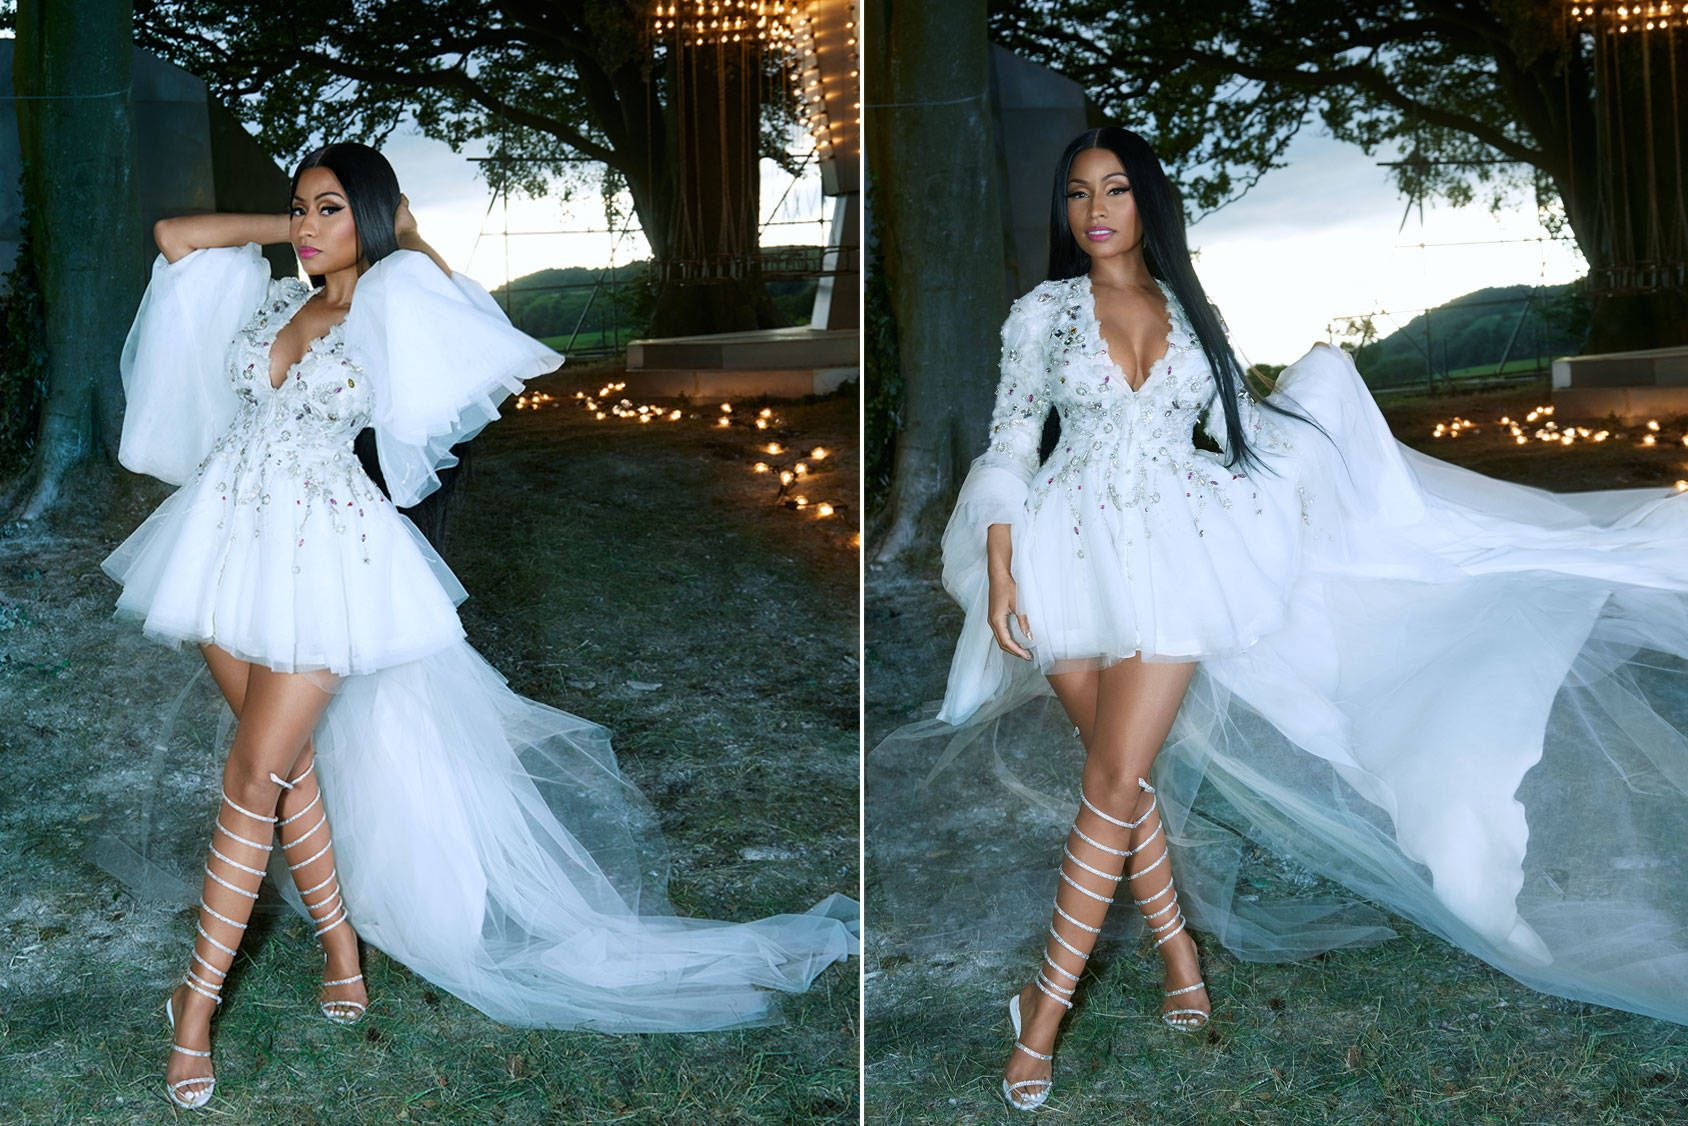 55 Nicki Minaj Wedding Dress Best Wedding Dress For Pear Shaped